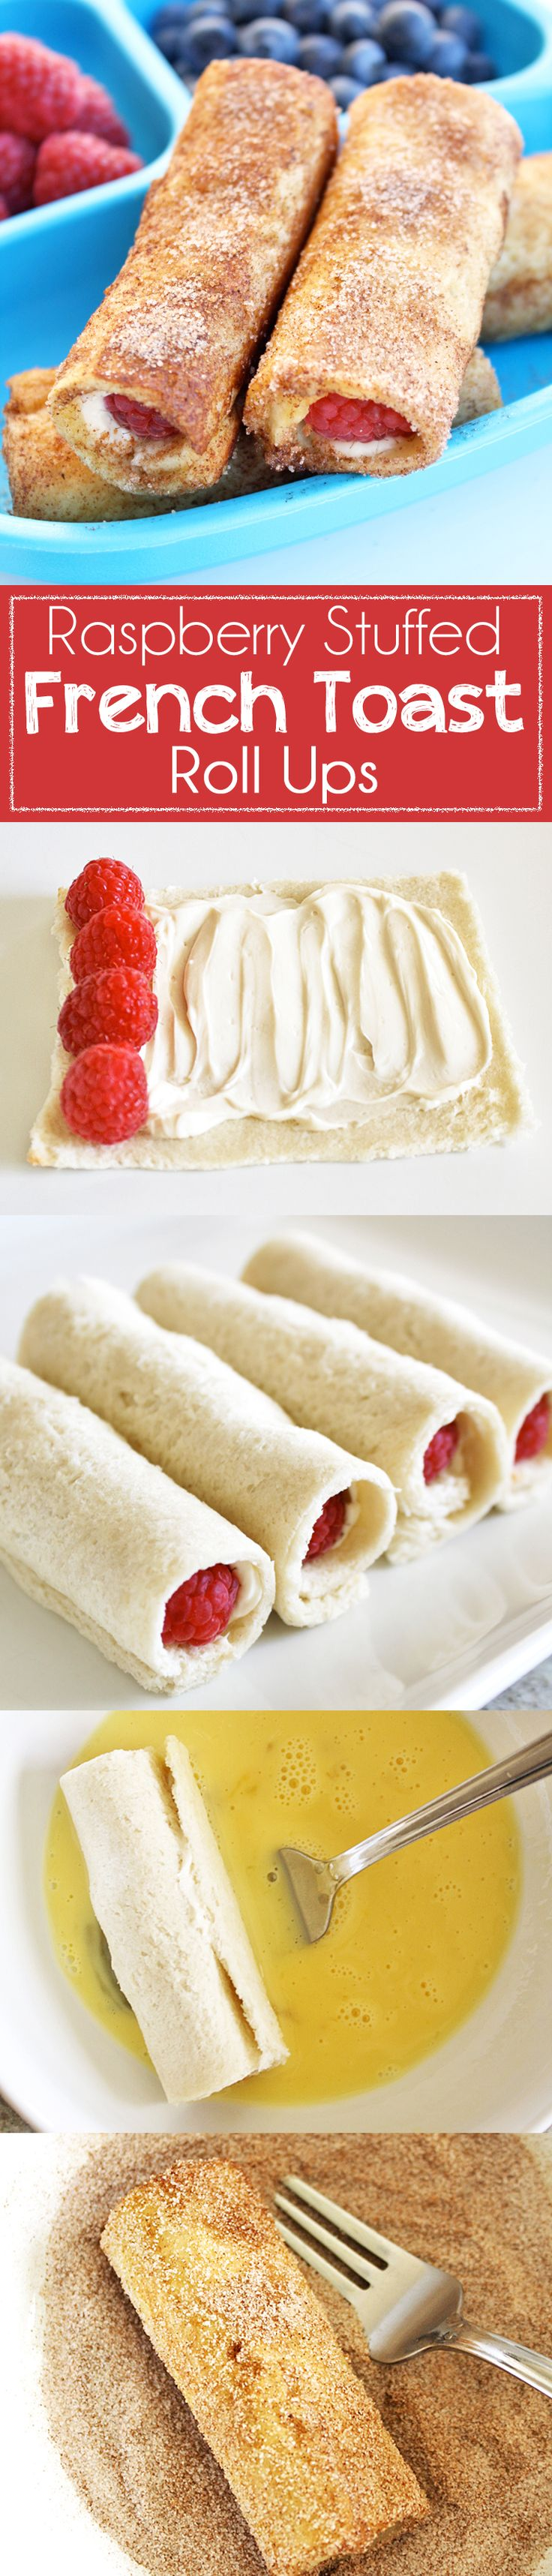 Rapsberry Stuffed French Toast Roll Ups